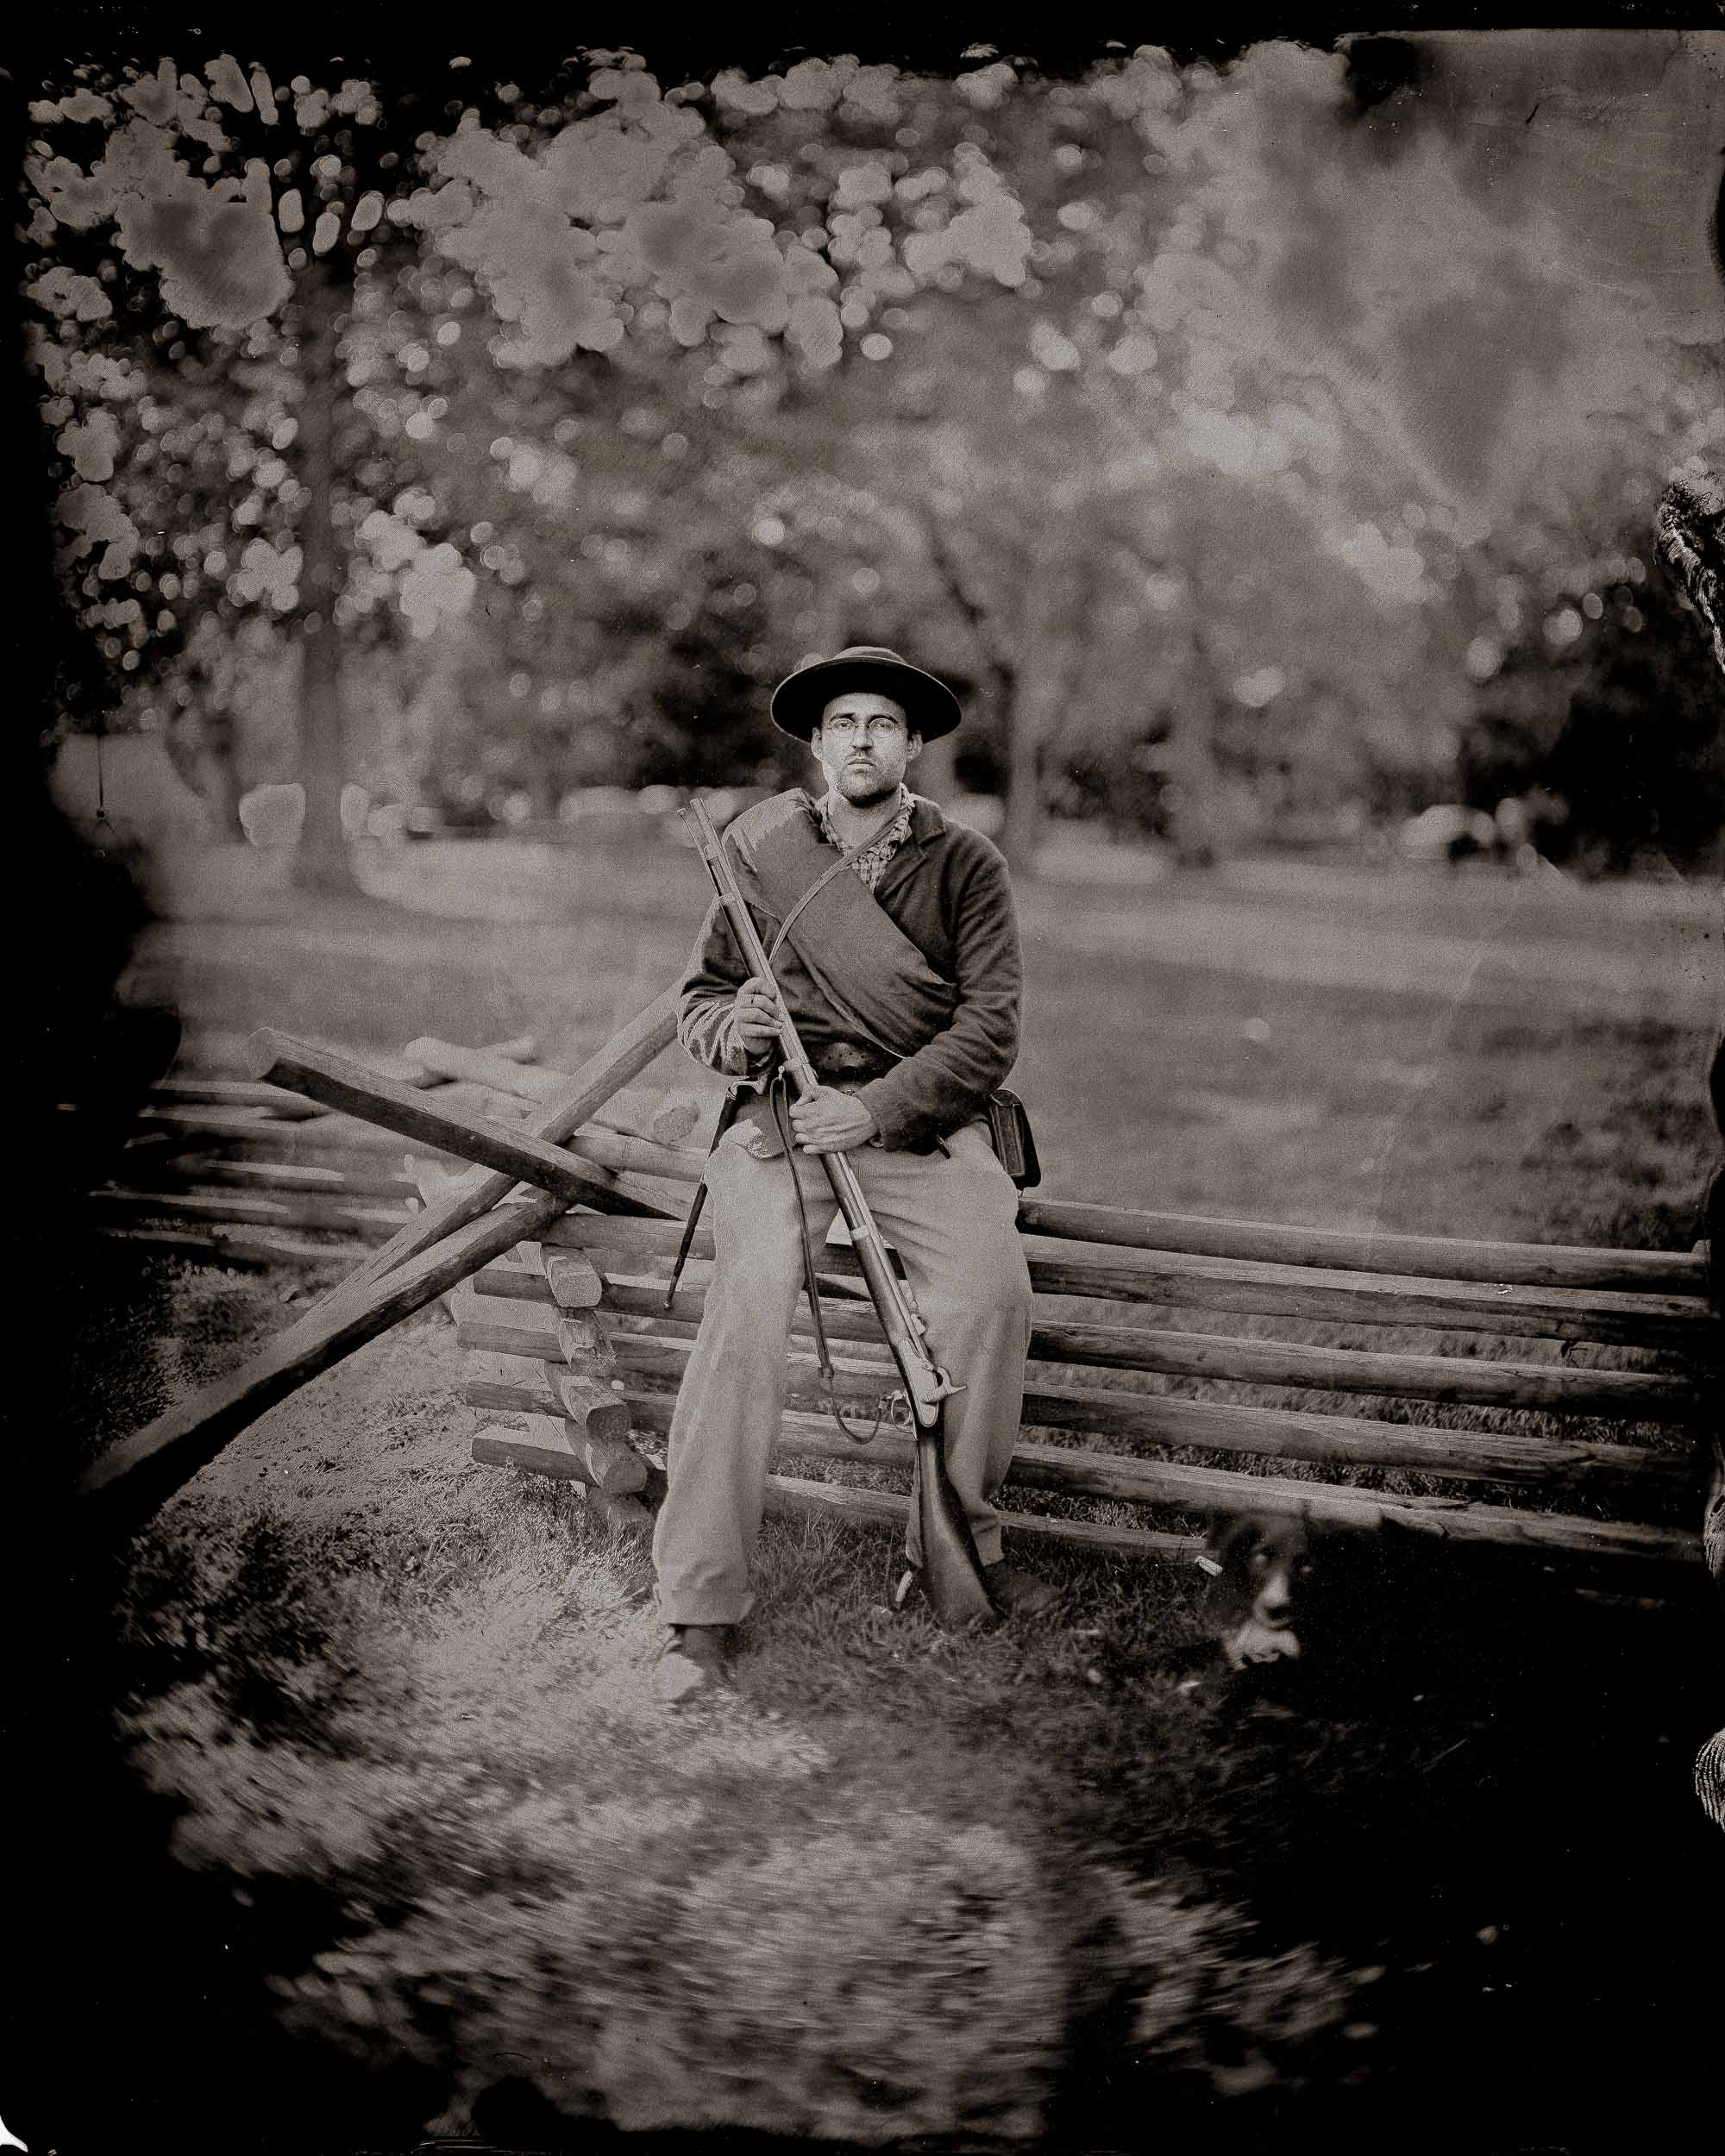 Patrick-Cavan-Brown-Tintype-Website-002